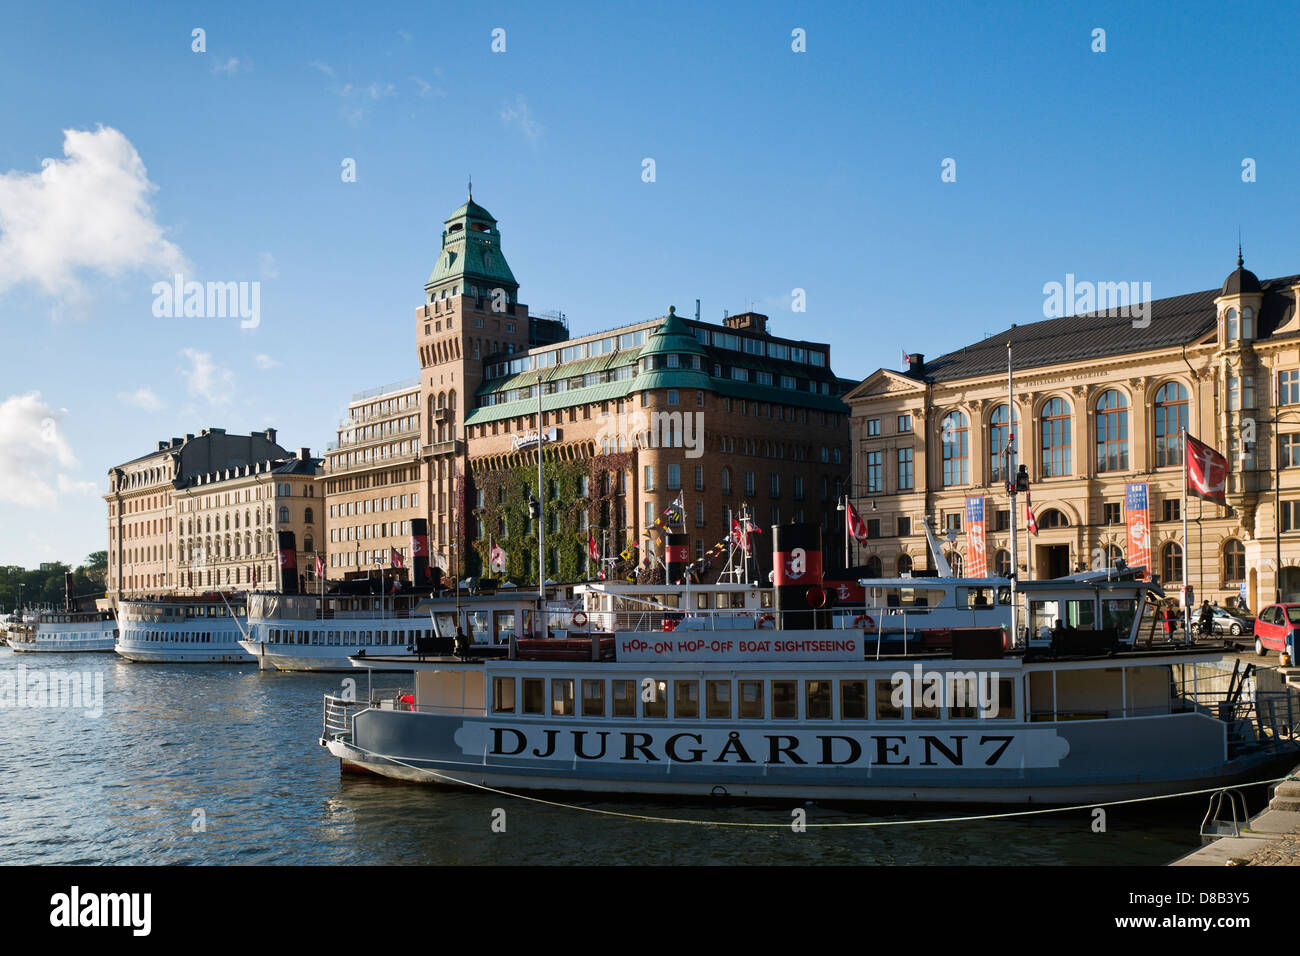 Djurgården ferry and SAS Radisson Hotel in Nybrohamnen. - Stock Image